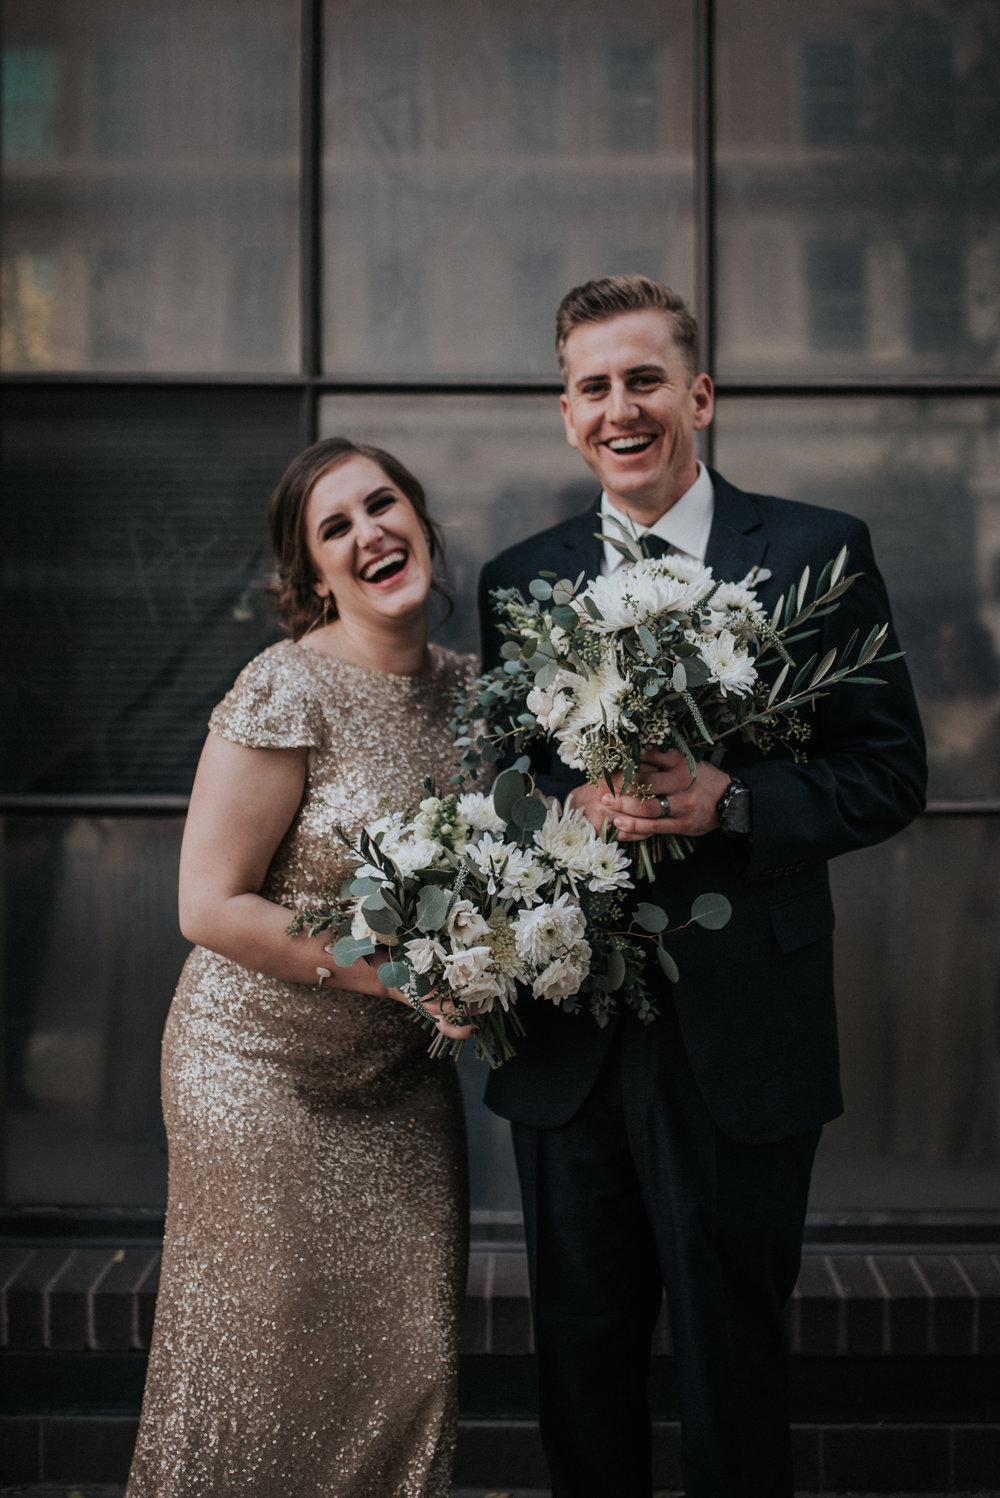 Downtown Phoenix Moody Glam Wedding - Bridesmaid Style